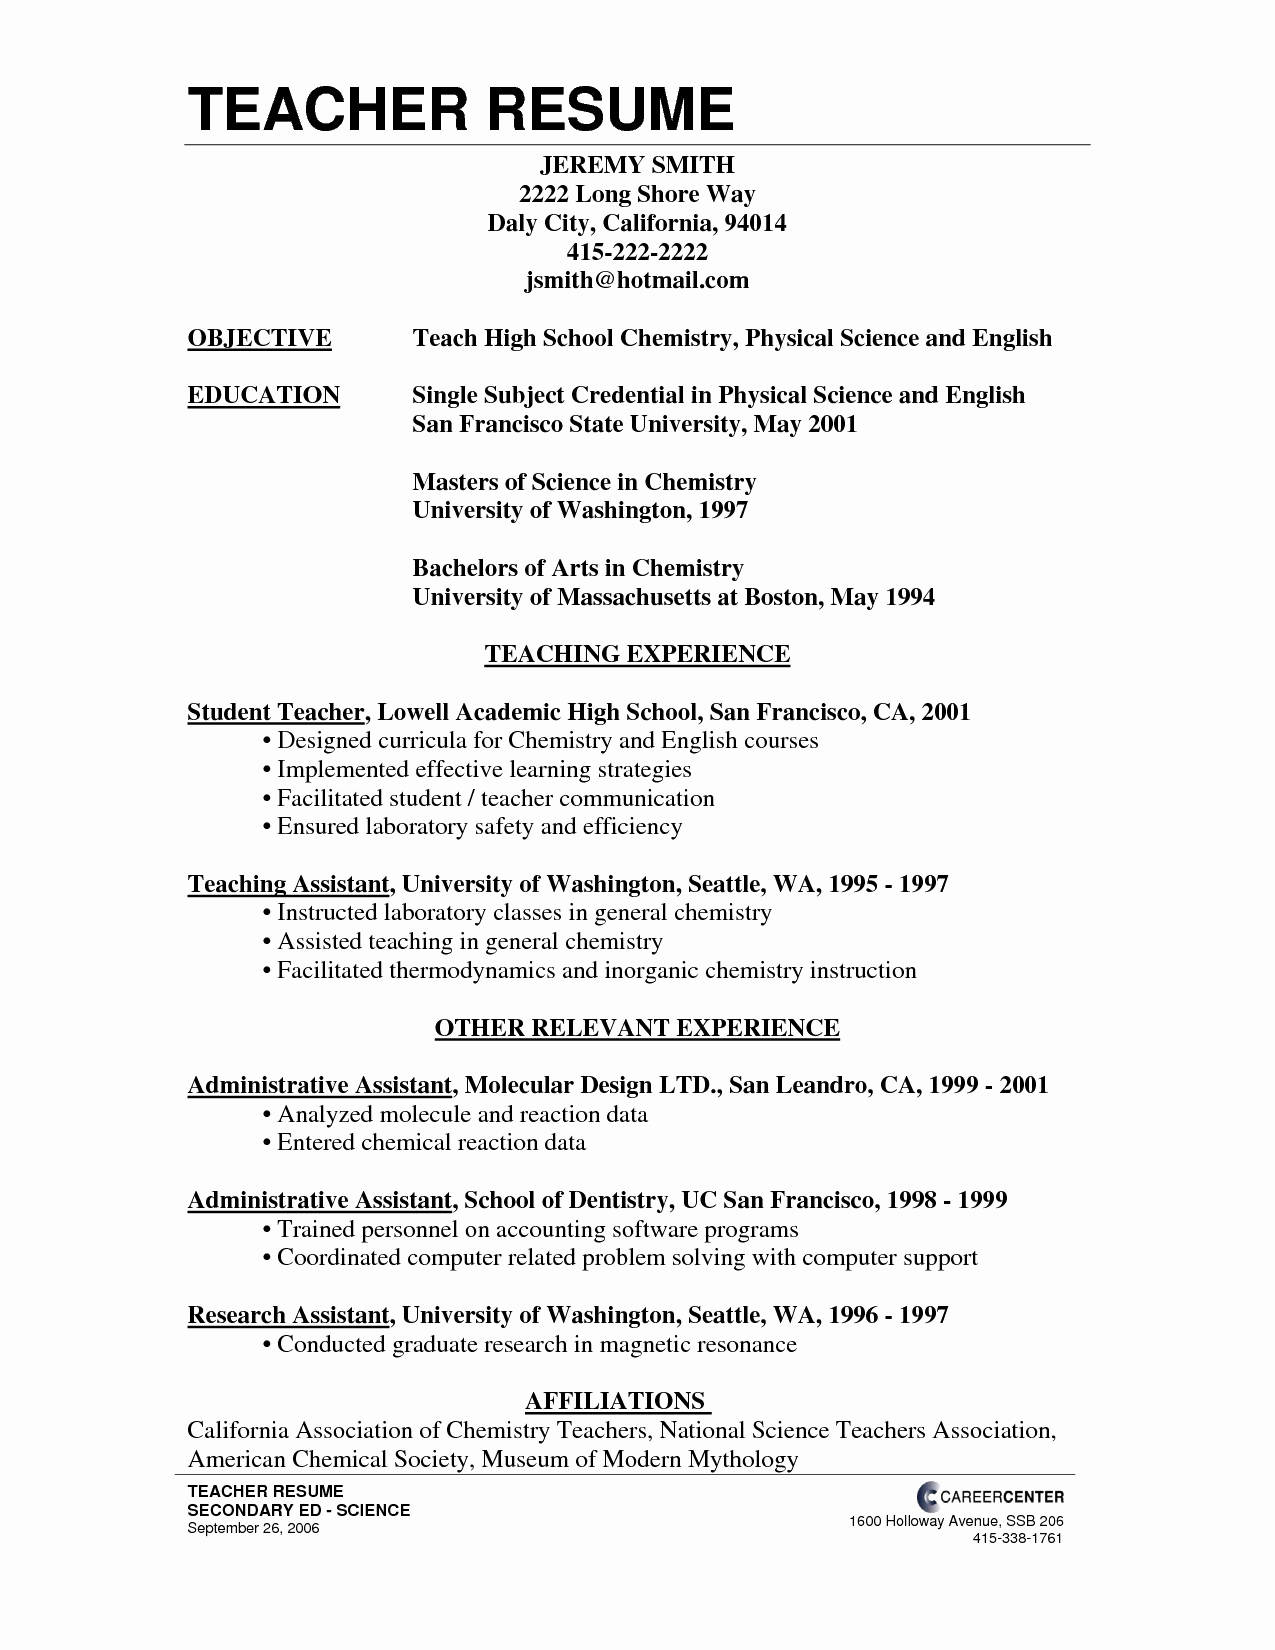 Microsoft Word Cover Letter Template - Resume Templates Word Free New Free Cover Letter Templates Examples